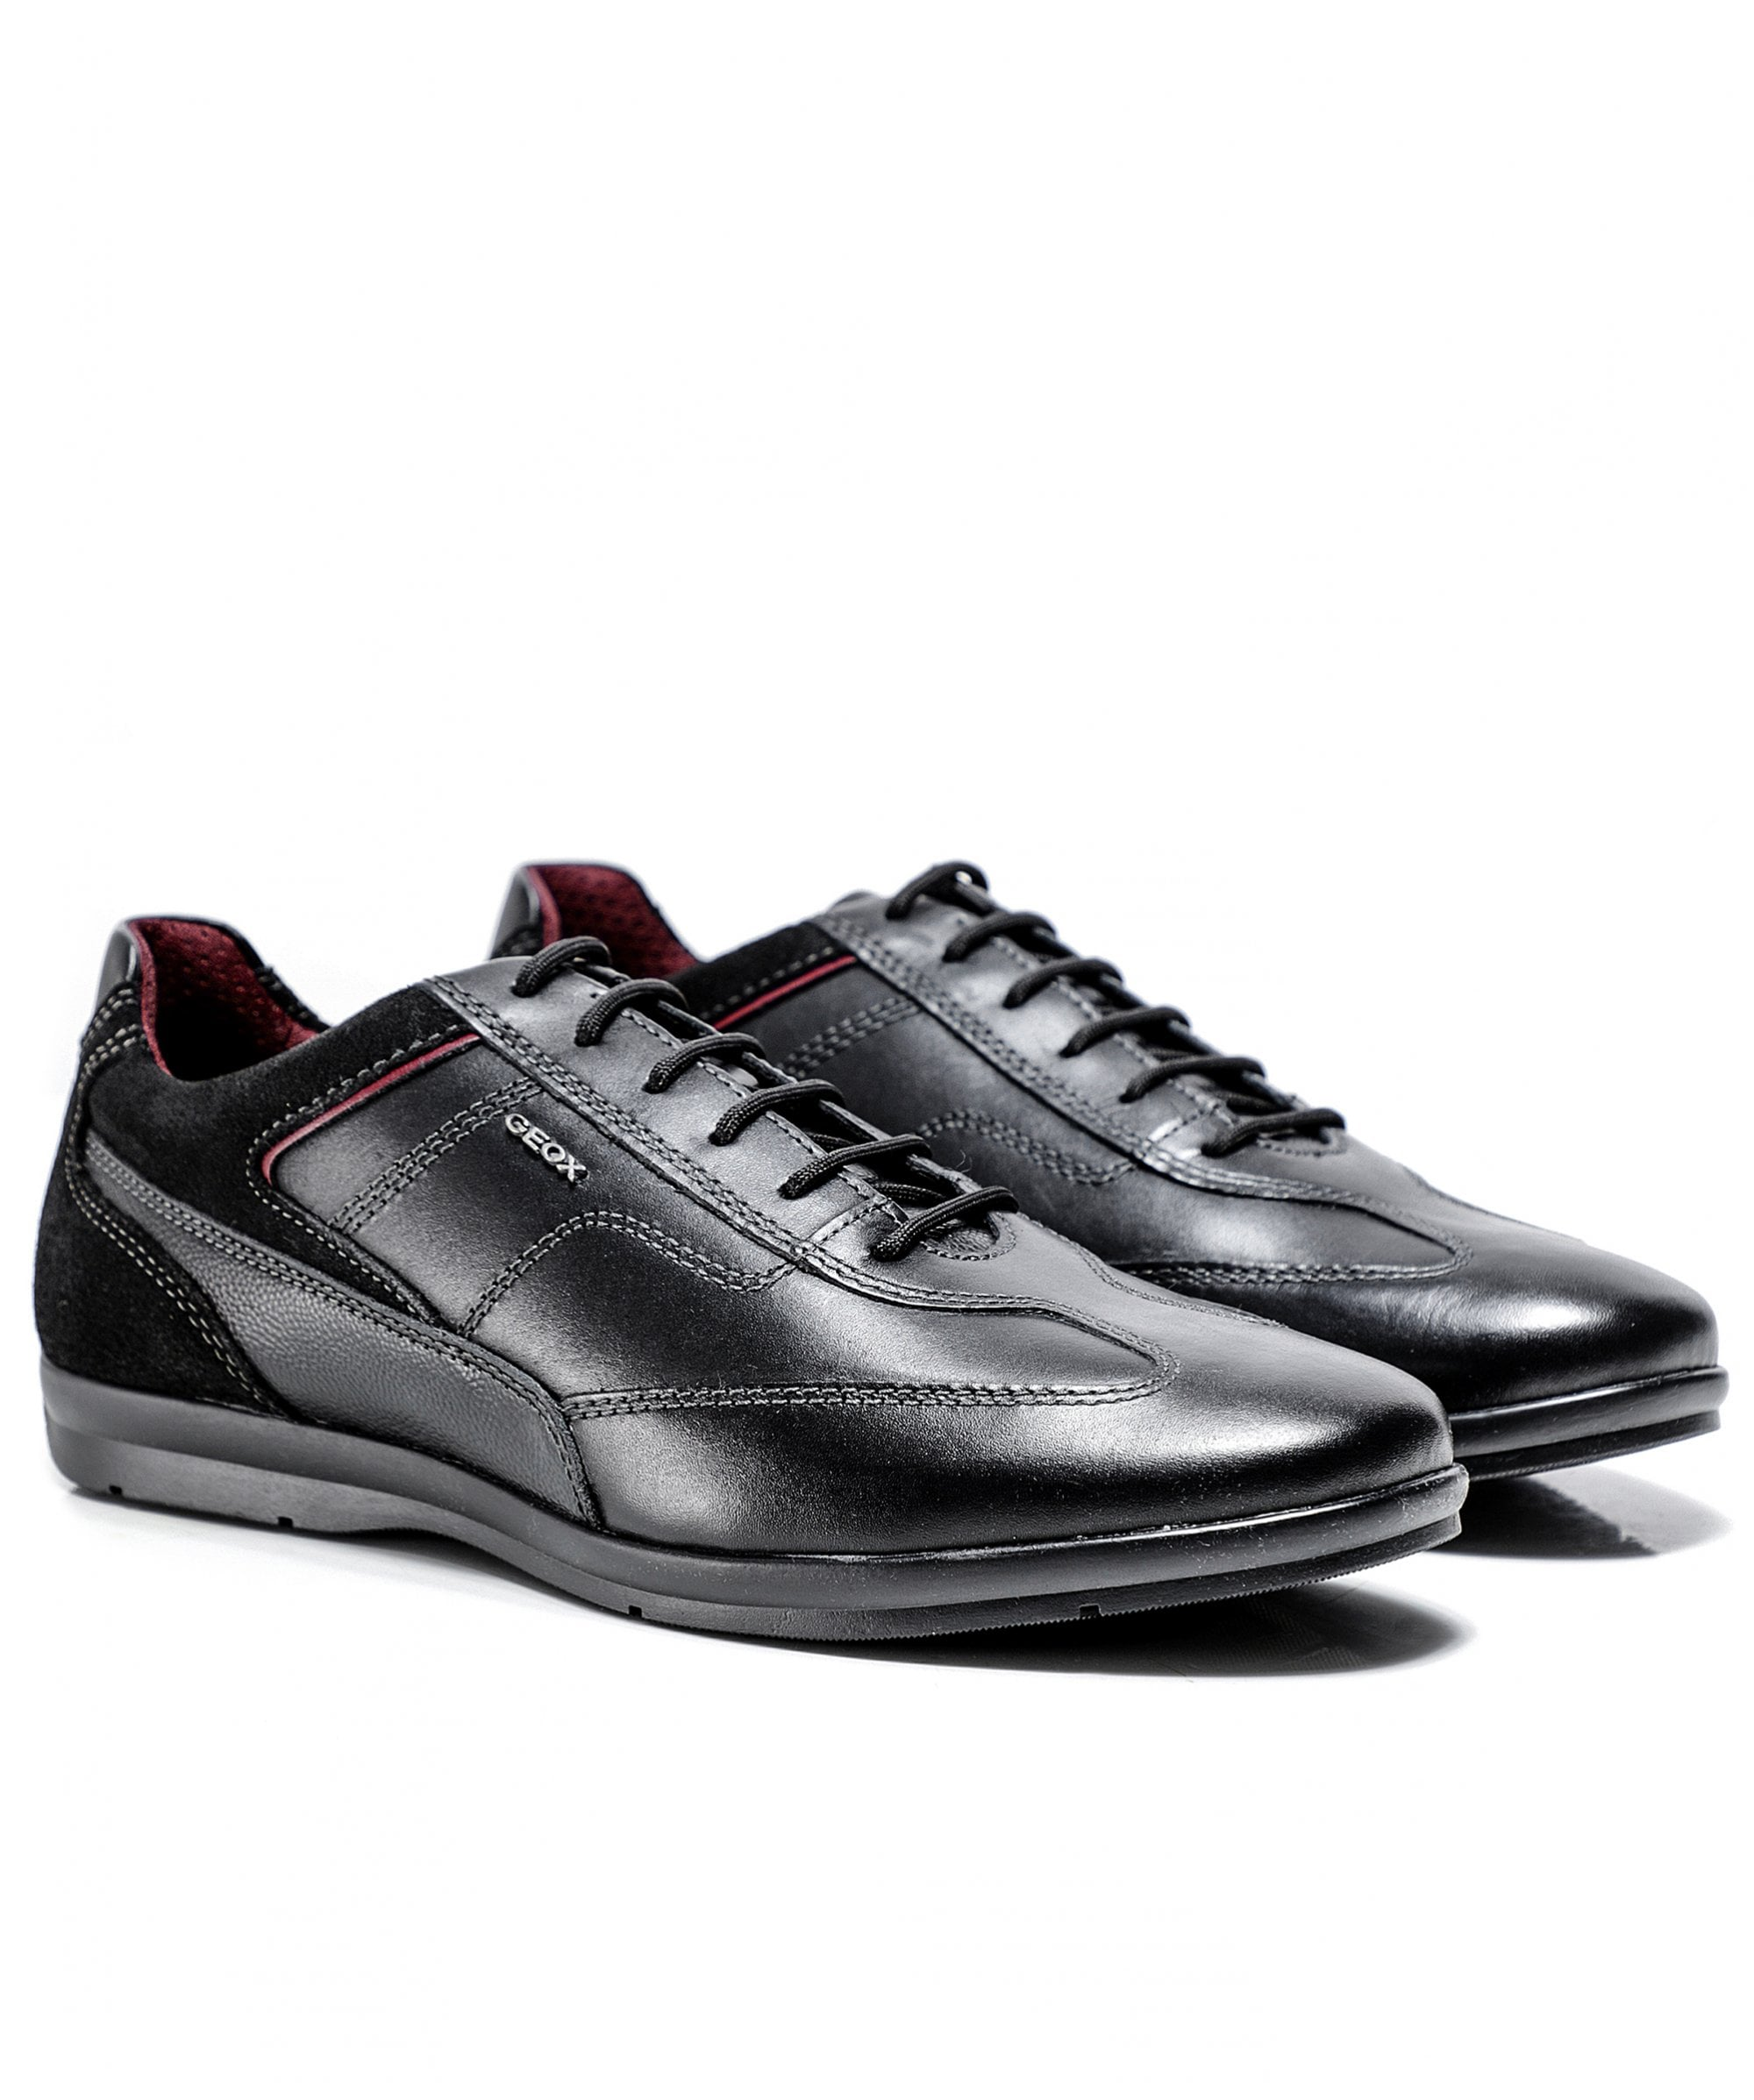 Geox Black Leather Adrien Trainers